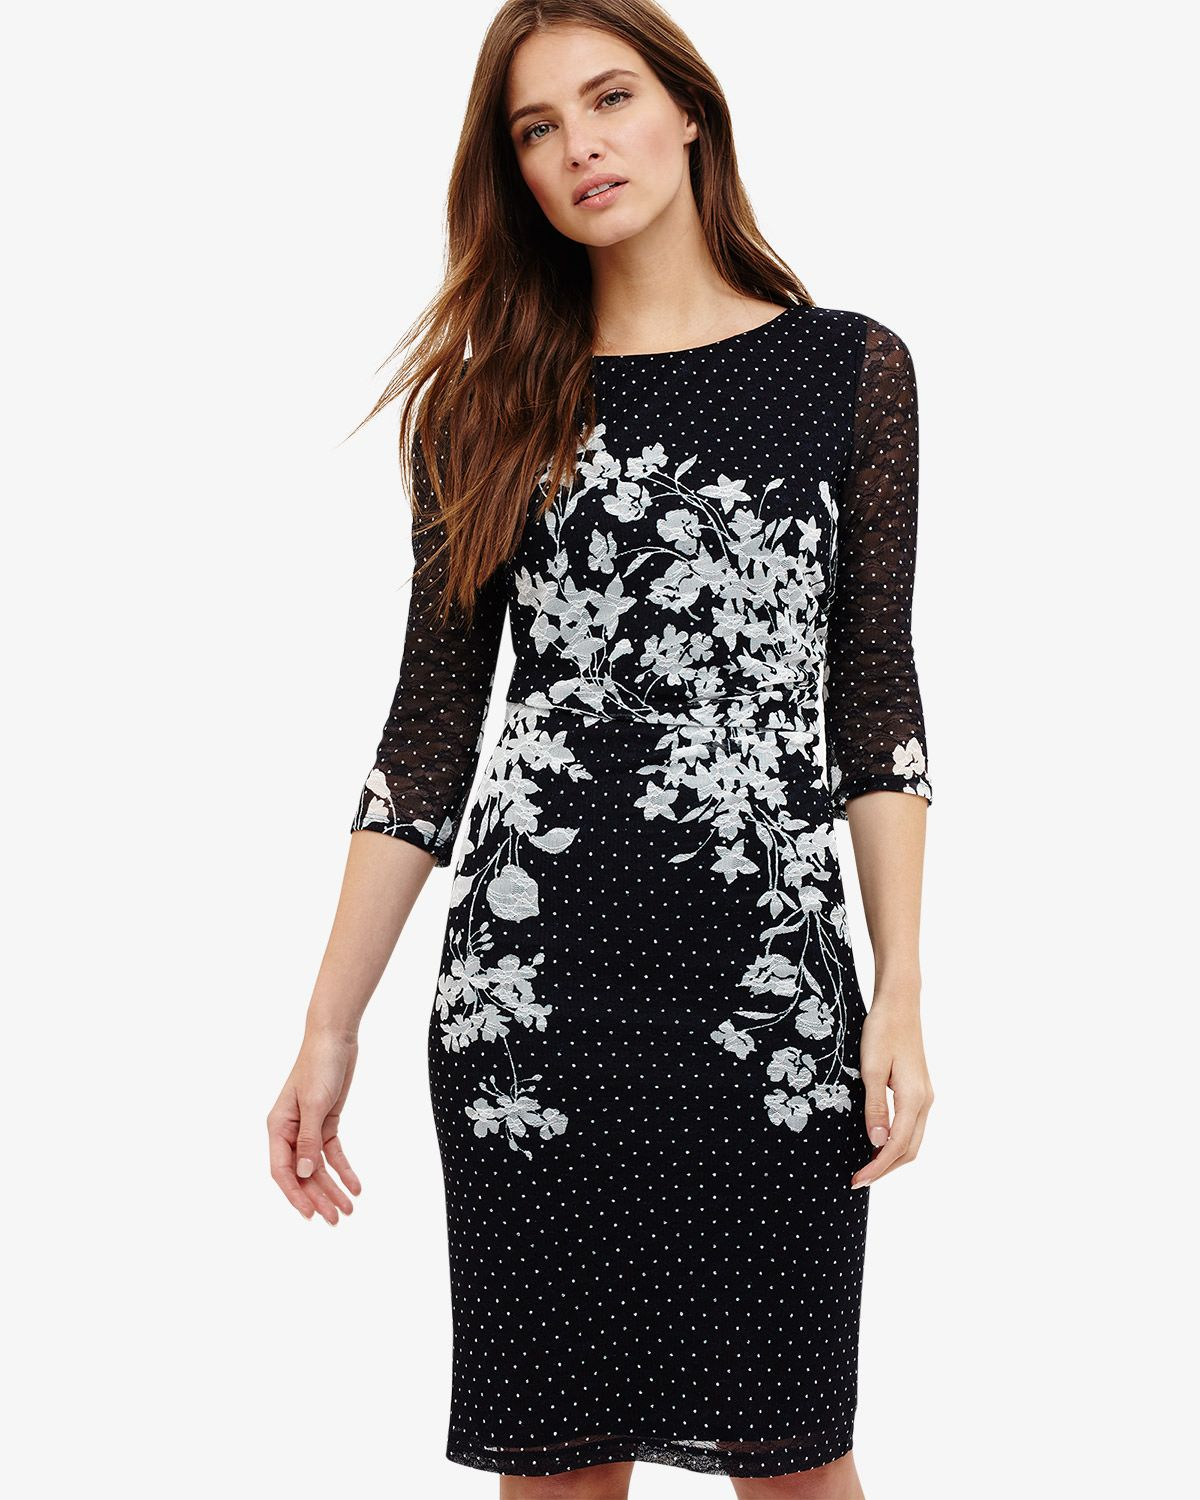 5a50993d0ed8 Phase Eight Daisy Floral Lace Dress Blue